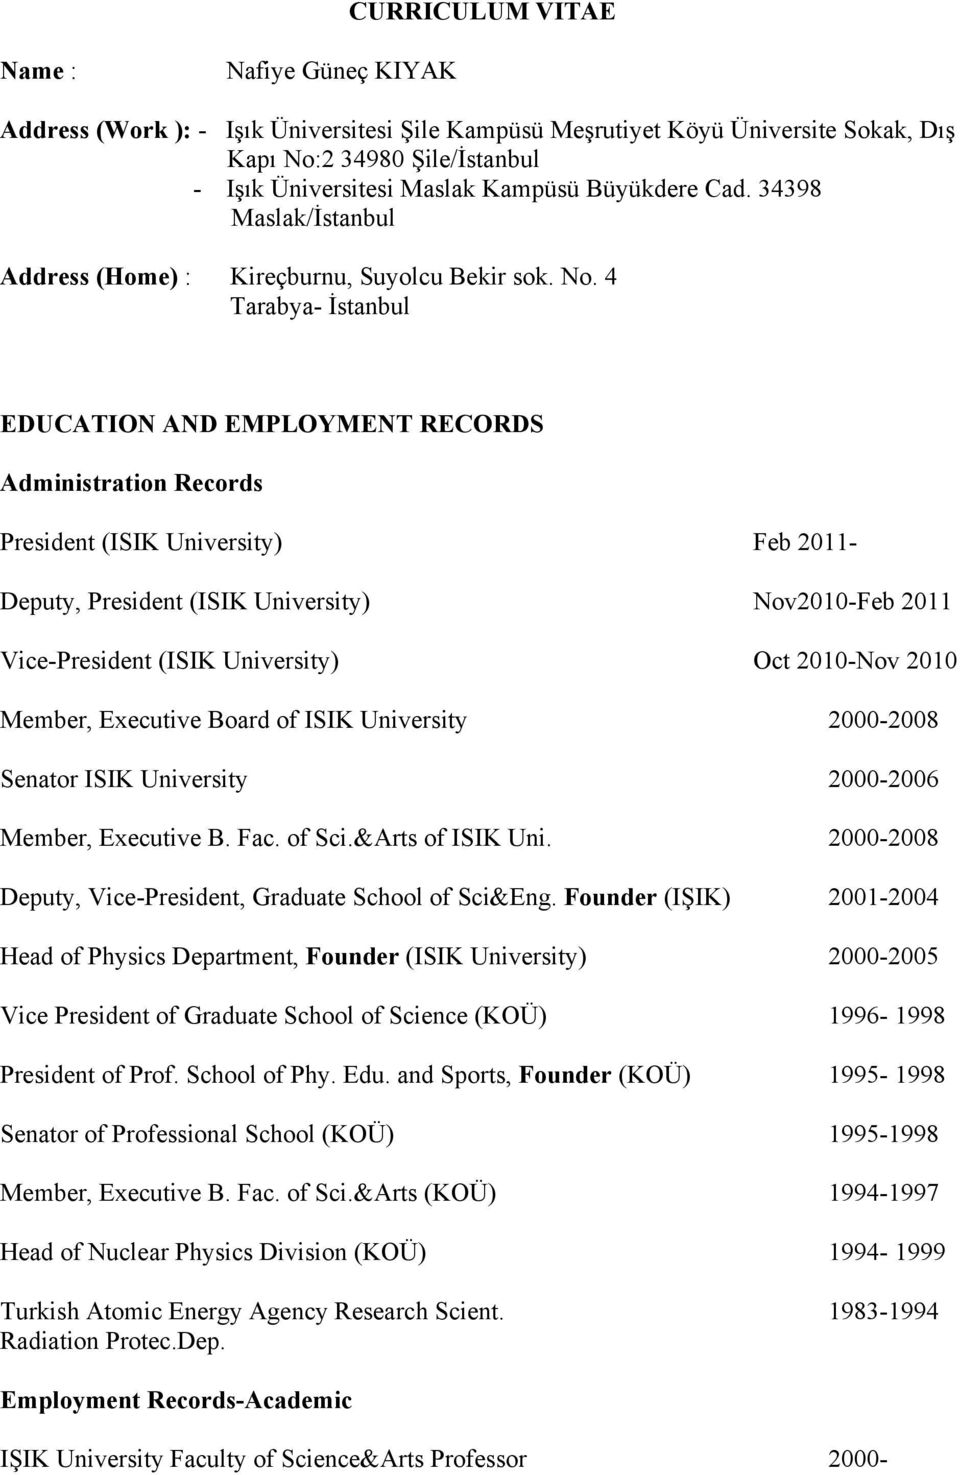 4 Tarabya- İstanbul EDUCATION AND EMPLOYMENT RECORDS Administration Records President (ISIK University) Feb 2011- Deputy, President (ISIK University) Nov2010-Feb 2011 Vice-President (ISIK University)